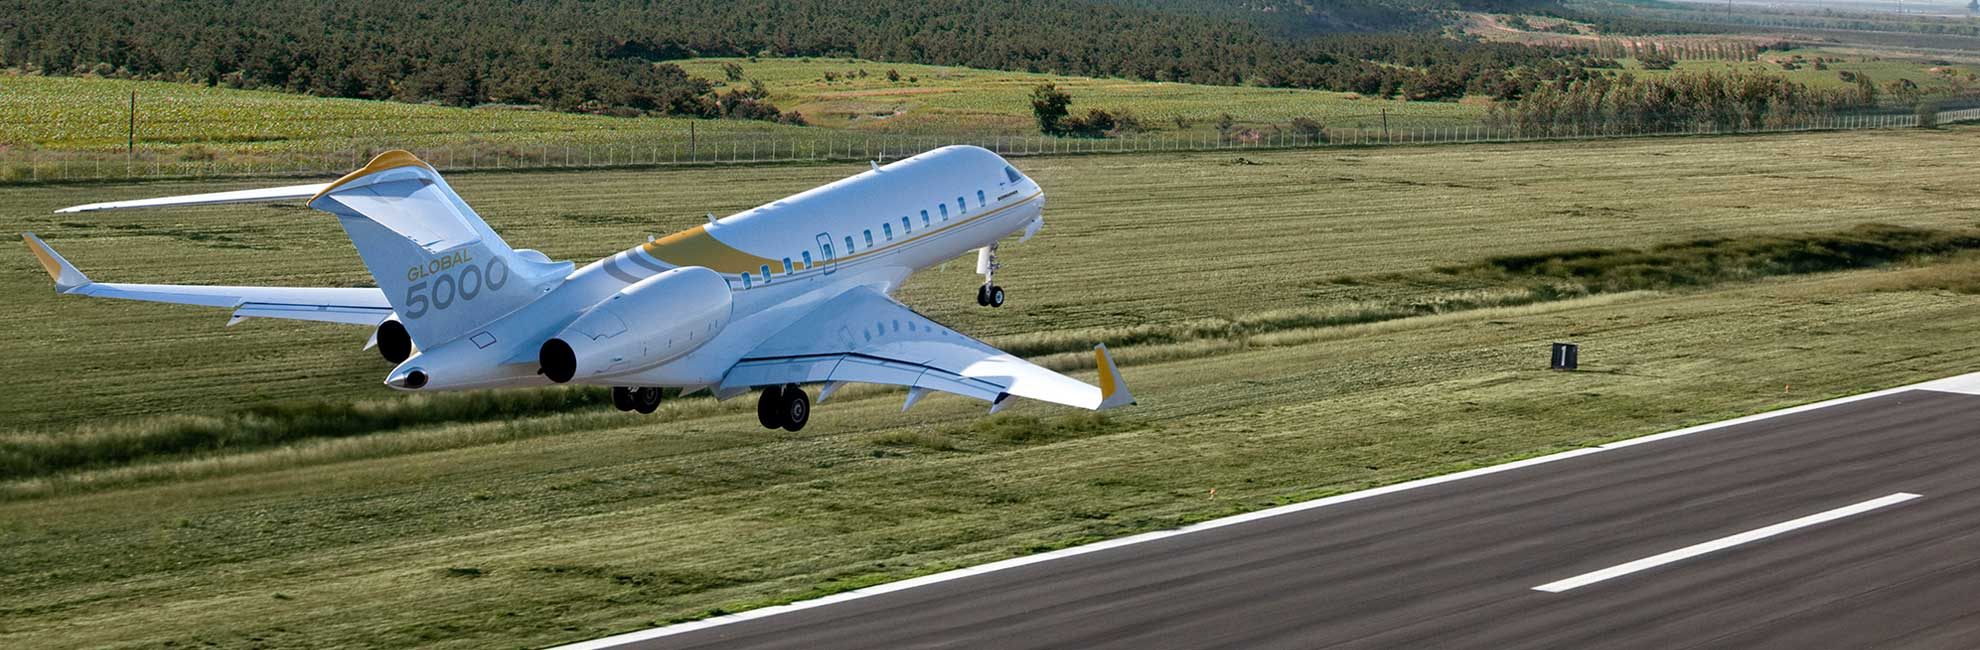 rent-this-private-jet-careers